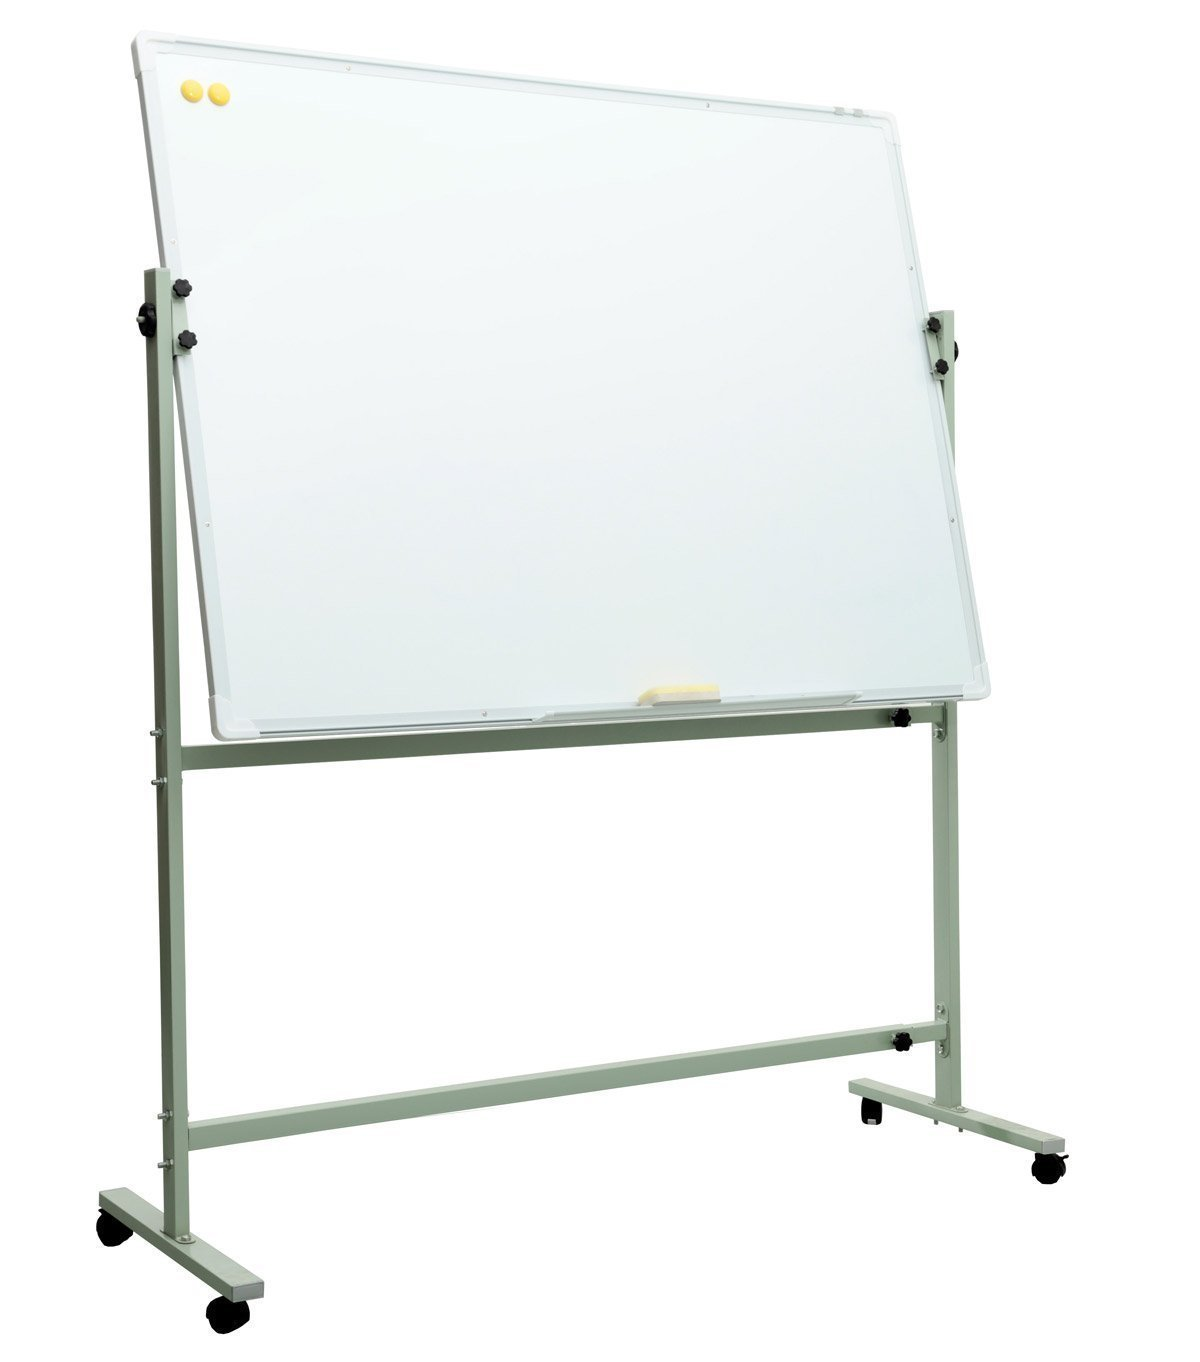 Magnetic Dry Erase Whiteboard with Stand Includes One Removable Pen Tray, Two Pens and Two Magnetic Nails for Office School Presentation(4836)